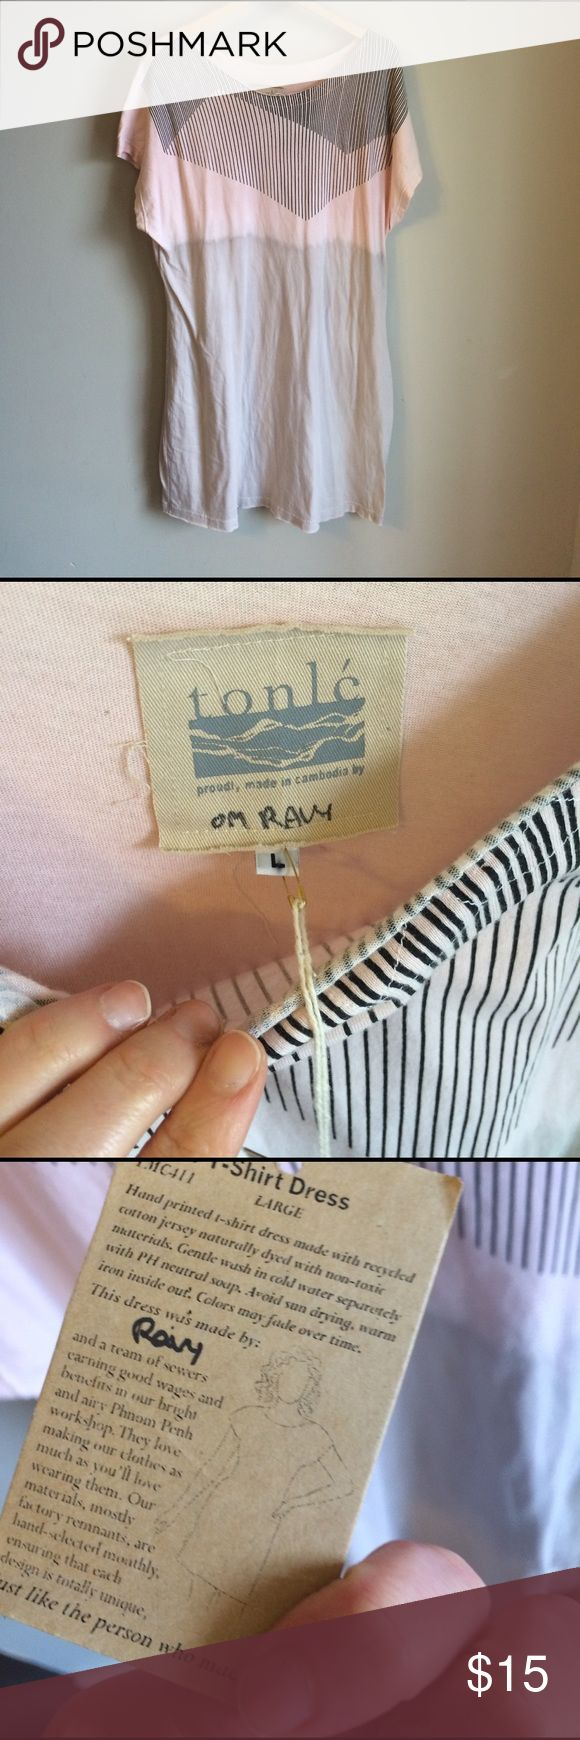 """Tonle Cambodia Basic TShirt Dress 100% Remnant Cotton. Pink and grey with screen print design. 38.5"""" long. Dresses"""